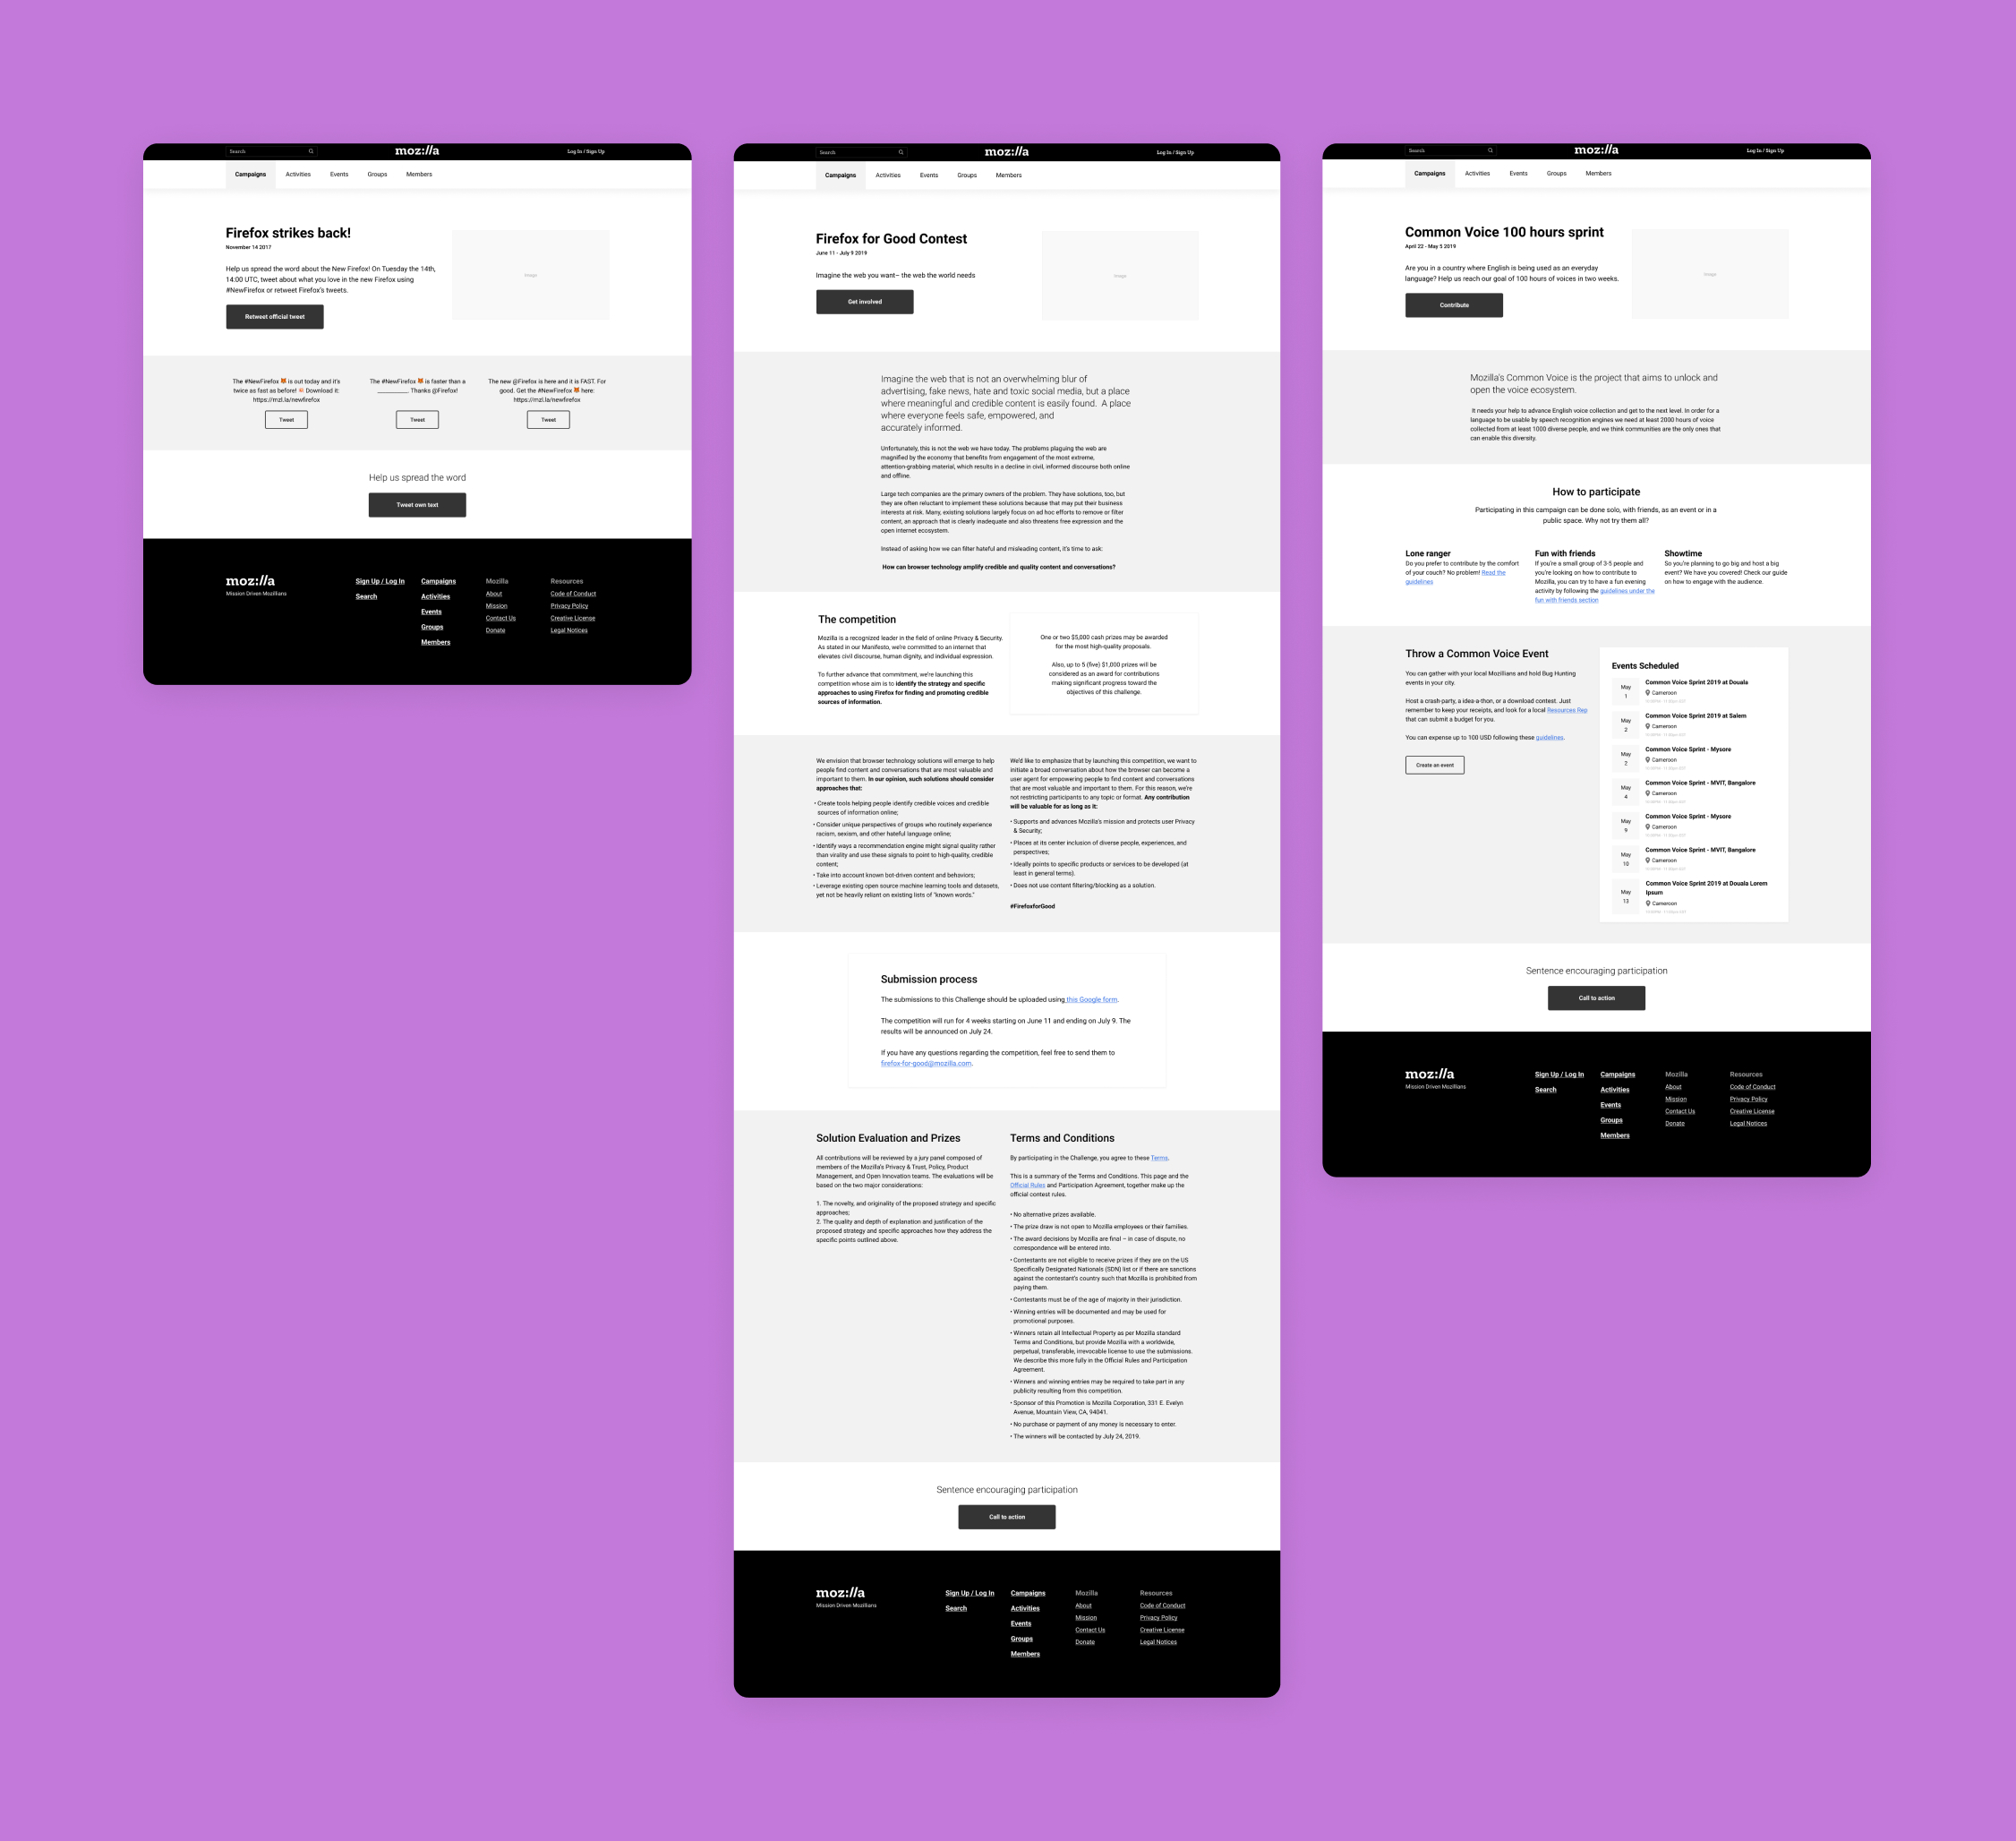 Wireframes of 3 different campaigns, all of varied page length